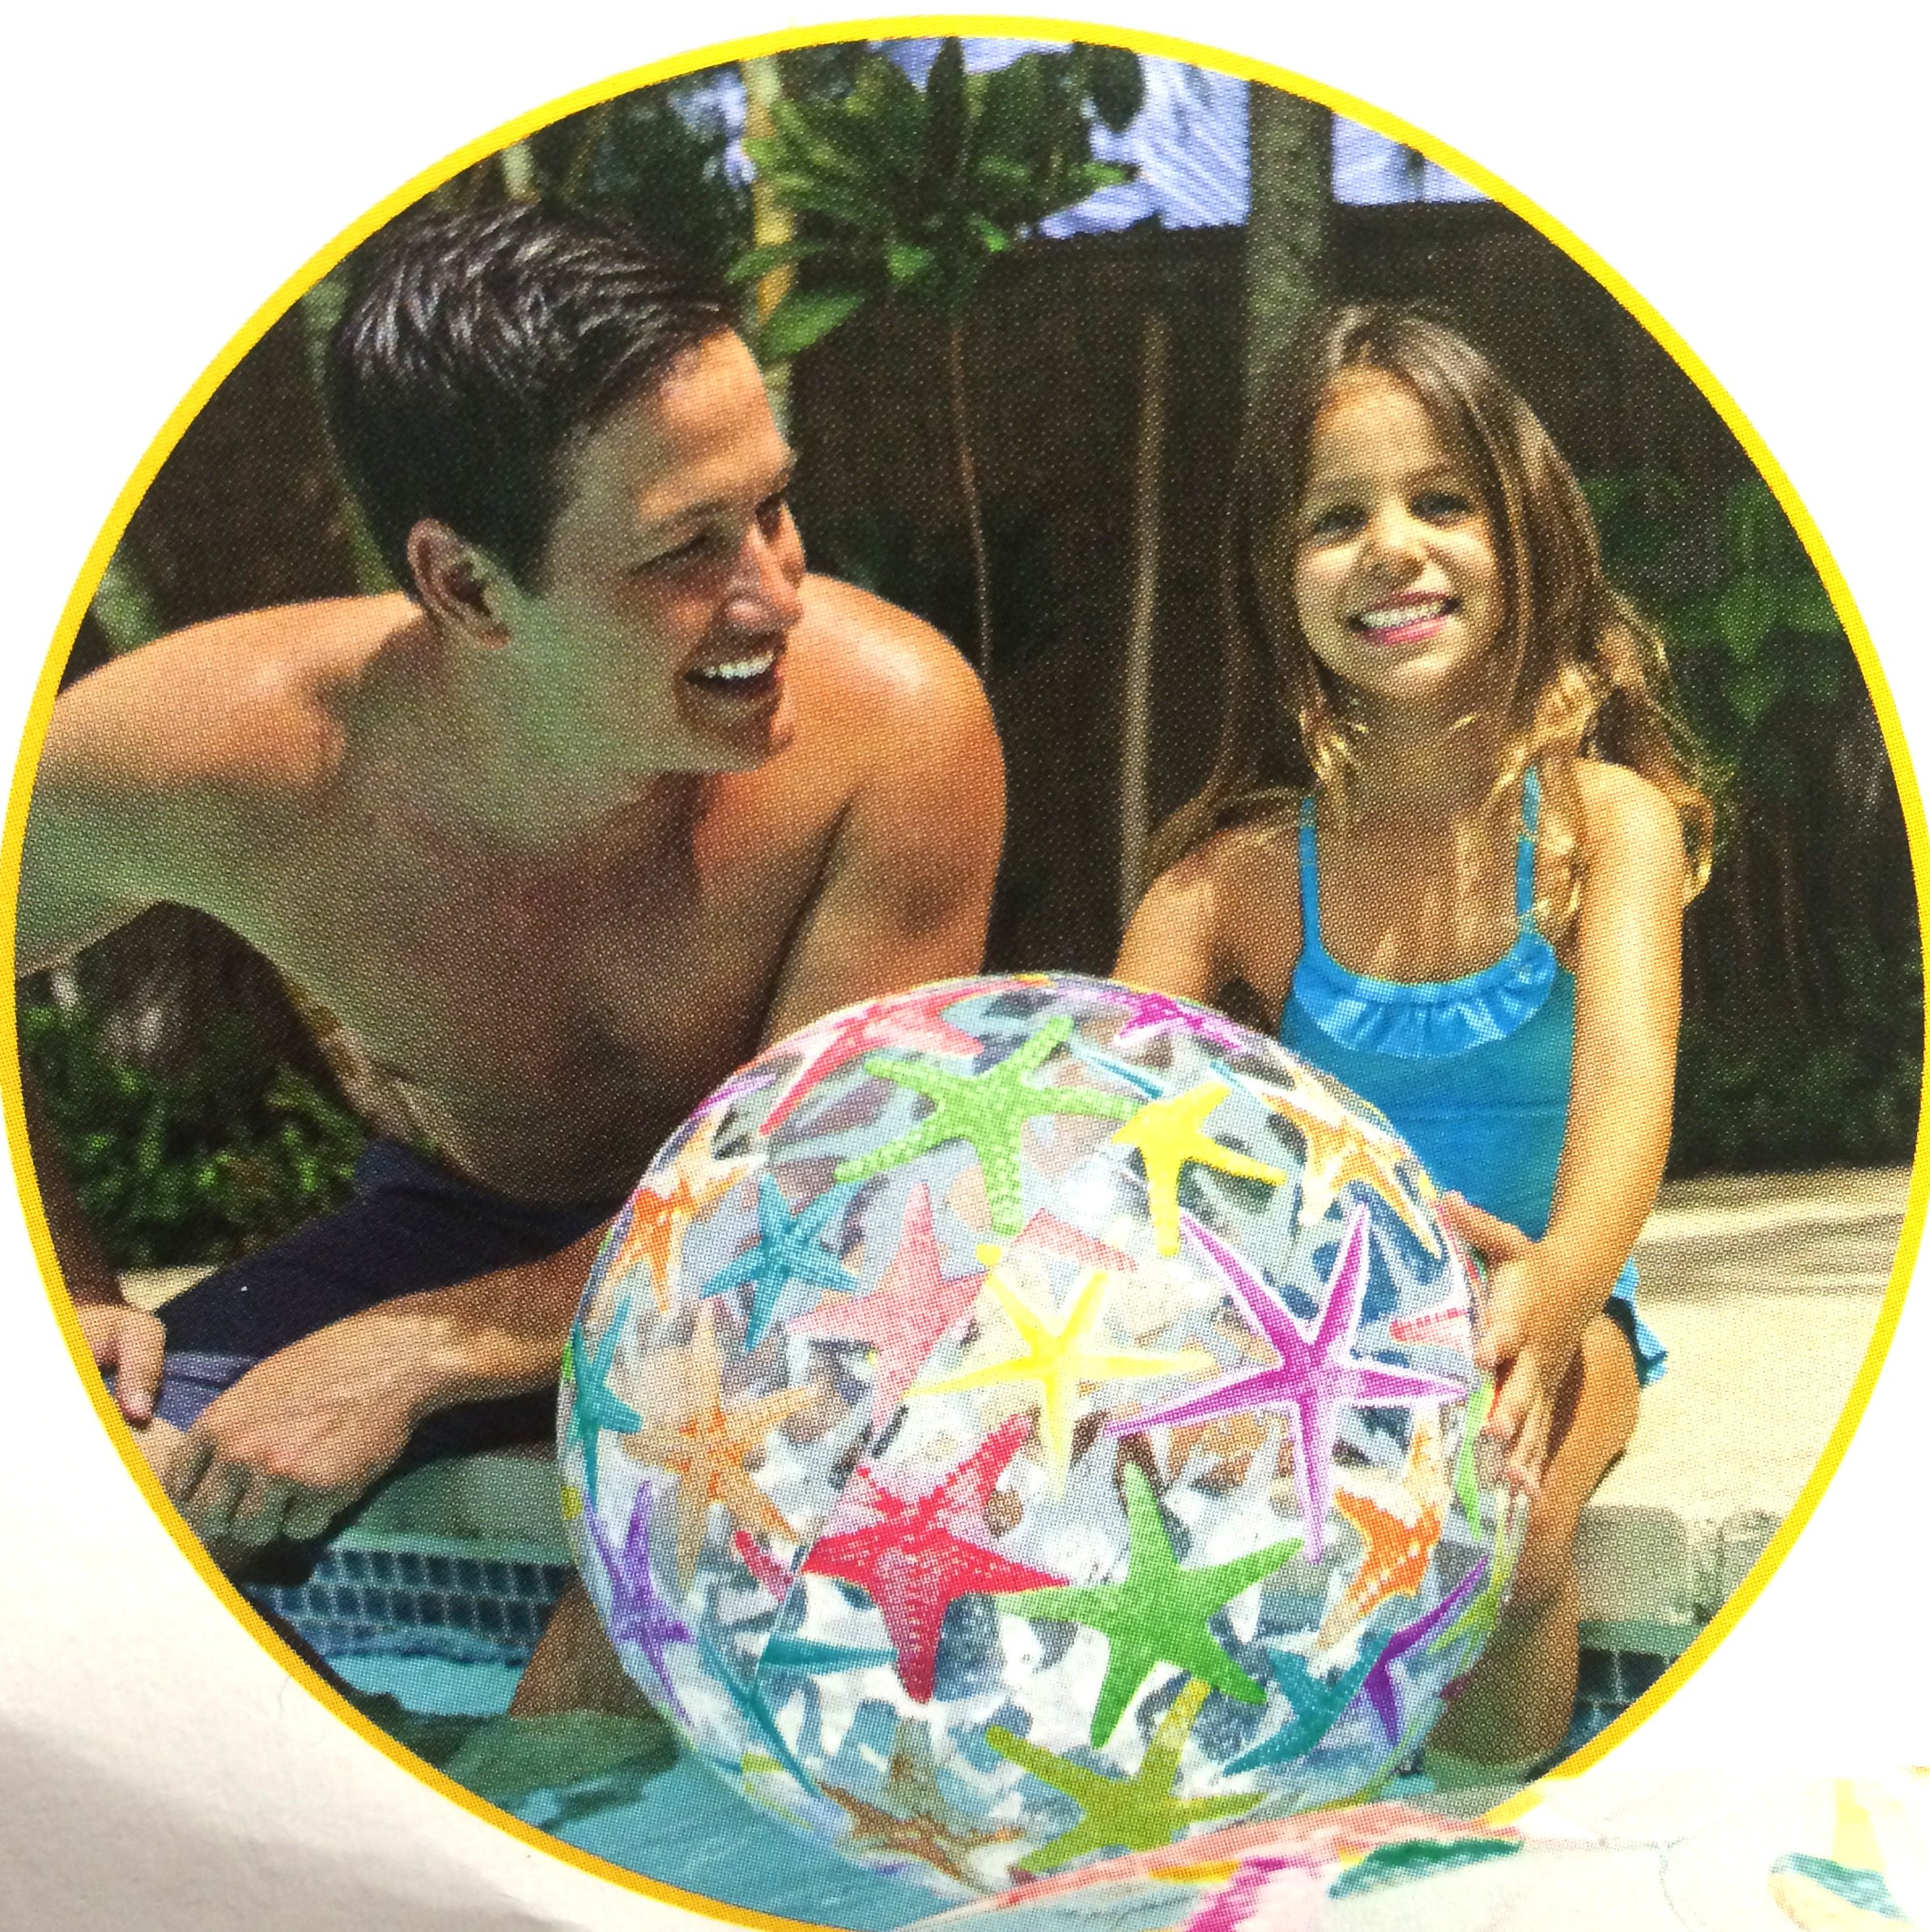 3 ALAZCO BEACH BALL LARGE 24'' Inflatable , Cute Colorful Design (fish, Starfish, Octopus, Circles & Flowers) For Summer Pool Party Fun Games & Activities at The Beach or Lake For Adult & Kids by ALAZCO